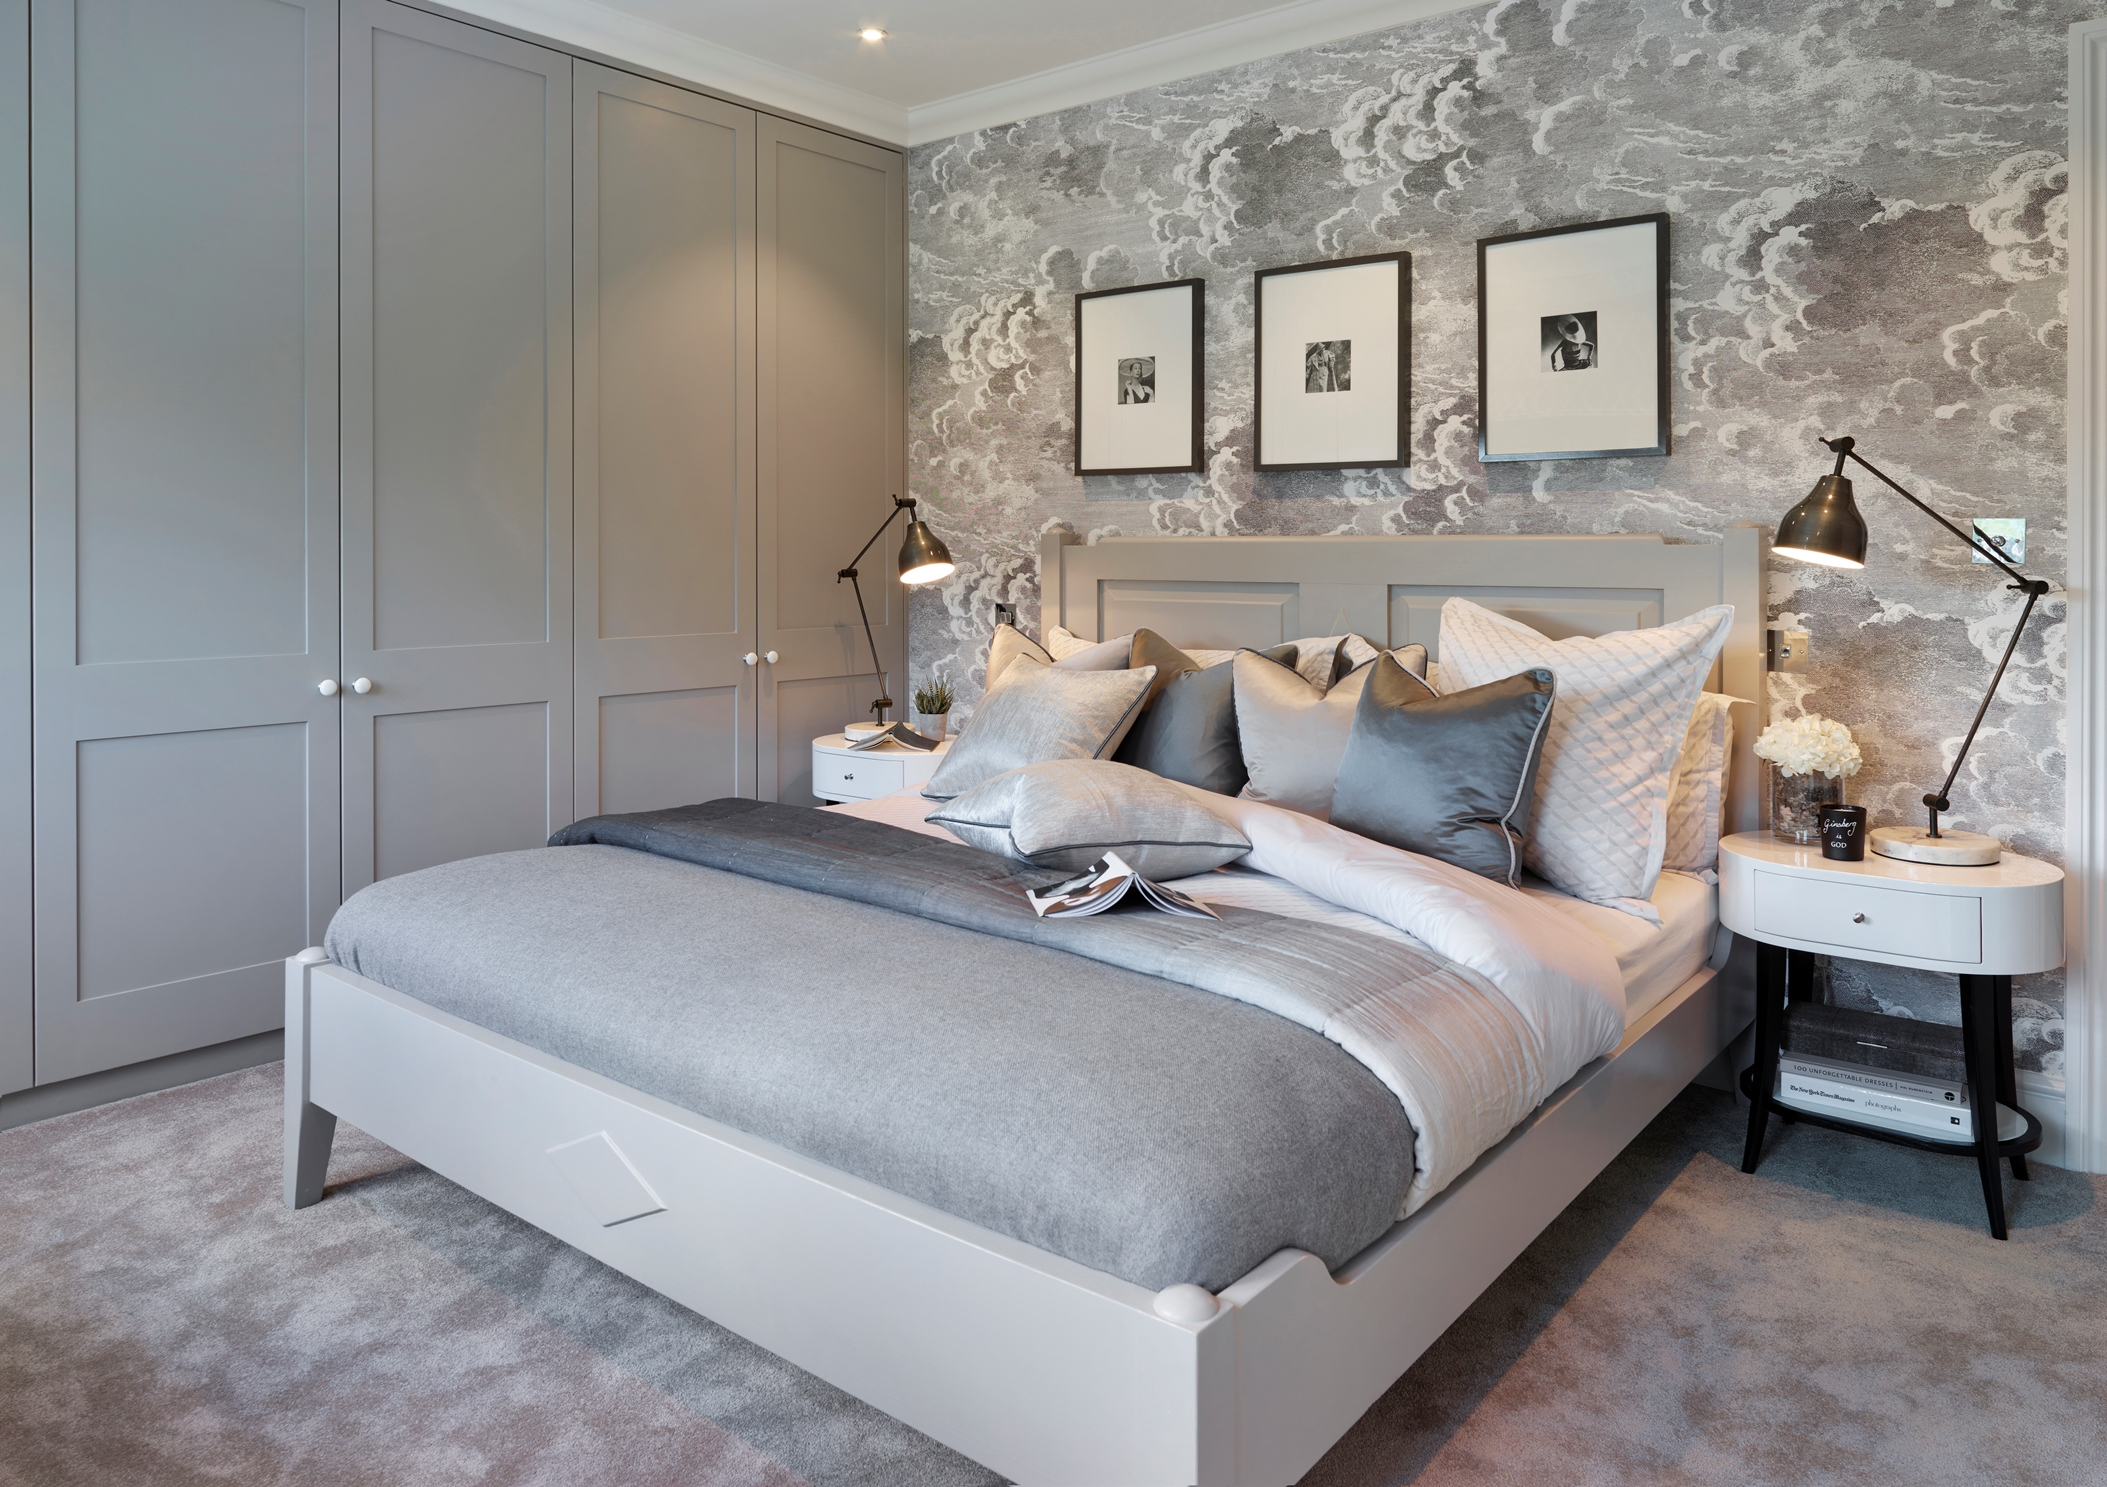 Small Scale Bedroom Furniture The Cobham Project By Sophie Paterson Interiors